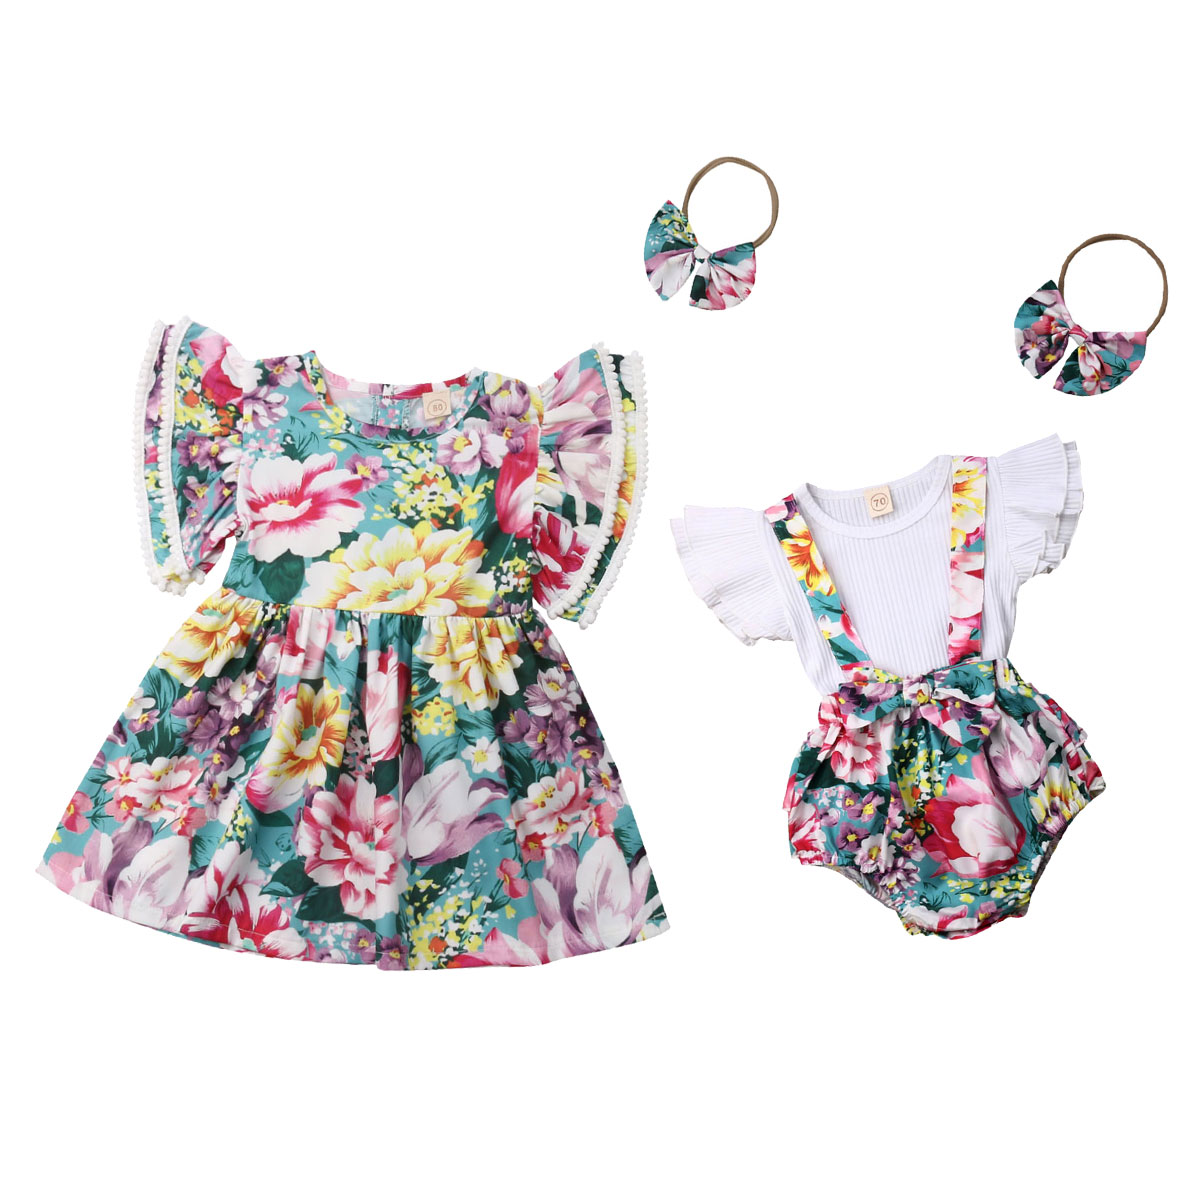 New Family Pair Sisters Clothes Sweet Cute Floral Princess Dress Sling Dress + T-Shirt Top Cute Baby Clothes Set